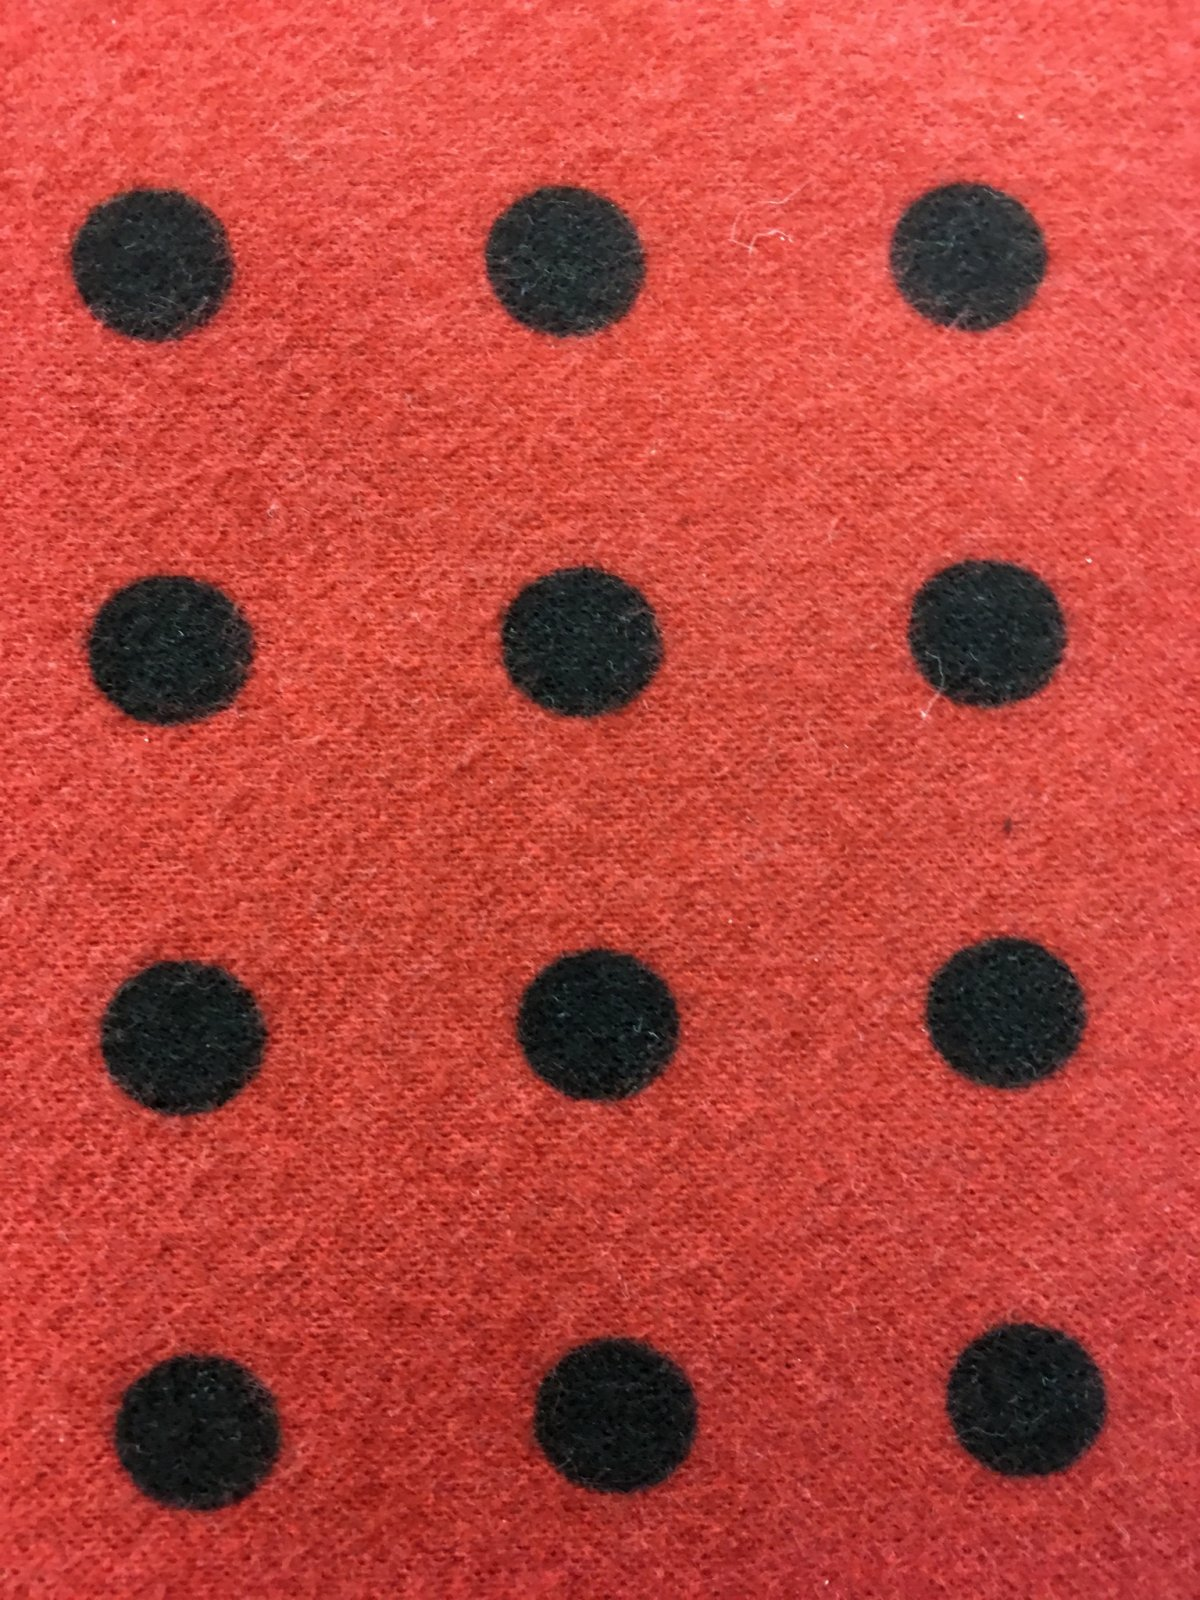 Woolies Flannel Dots - Large Dots Red F18145-R2